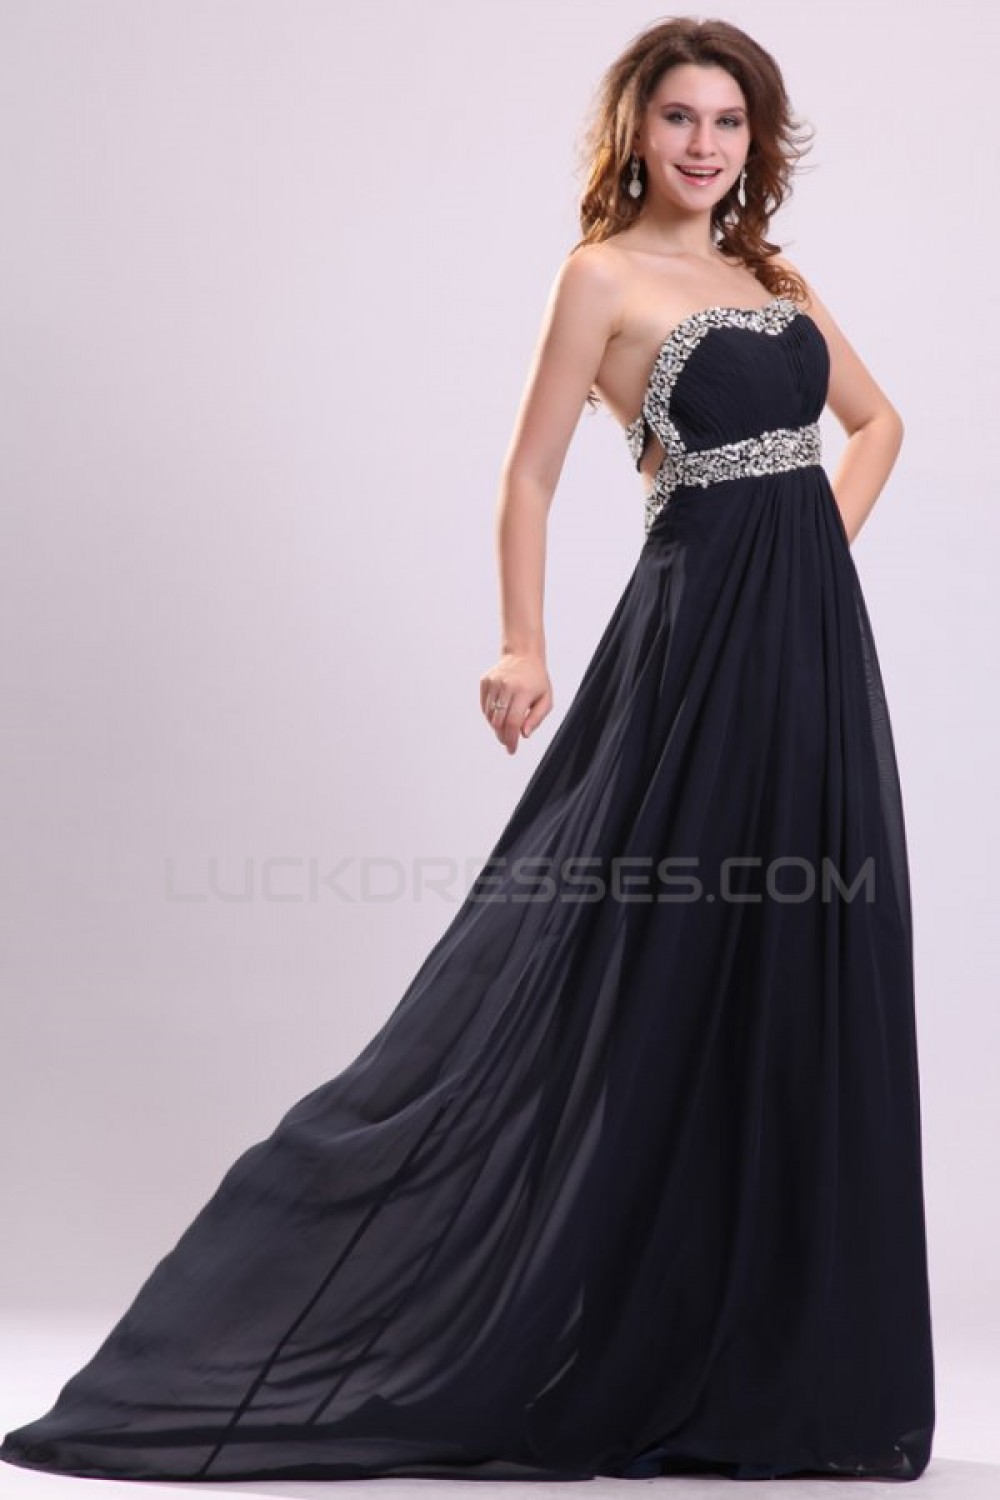 Sweetheart long beaded chiffon prom evening formal party dresses empire sweetheart long beaded chiffon prom evening formal party dressesmaternity evening dresses ed010011 ombrellifo Images